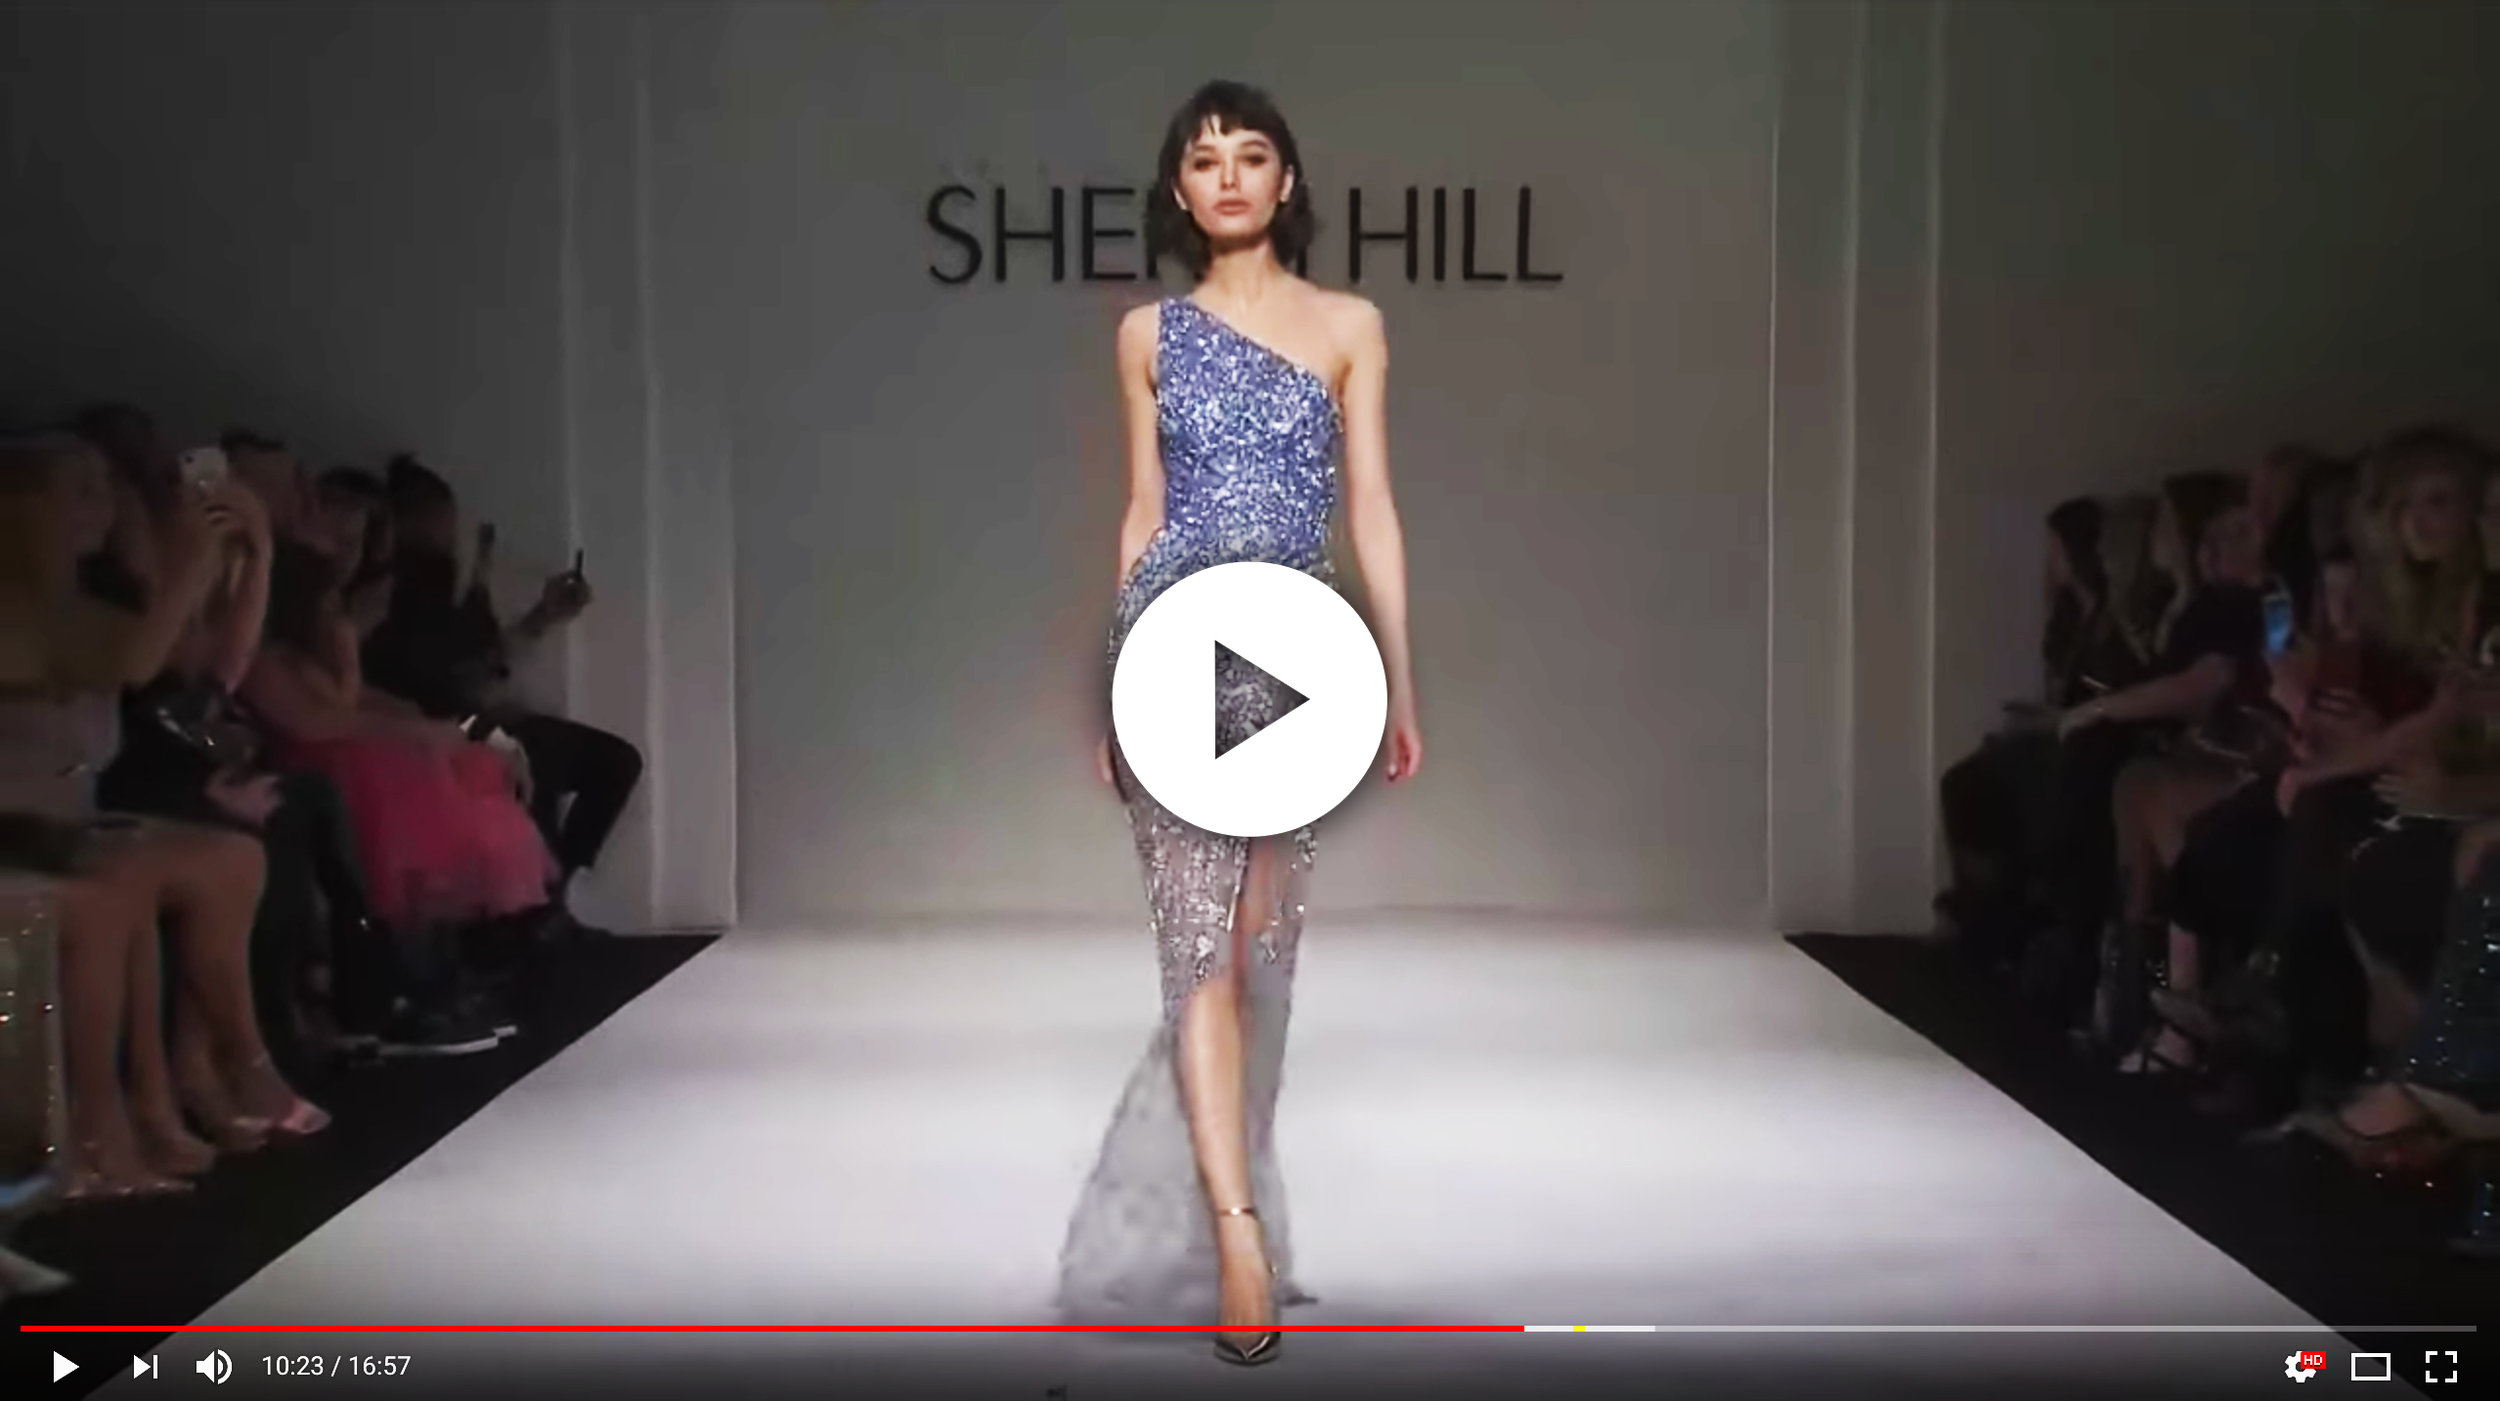 American eveningwear designer Sherri Hill dazzled with her Fall 2018 collection at Gotham Hall during New York Fashion Week. The runway featured two former Miss Universe winners: Pia Wurtzbach and Demi-Leigh Nel-Peters.